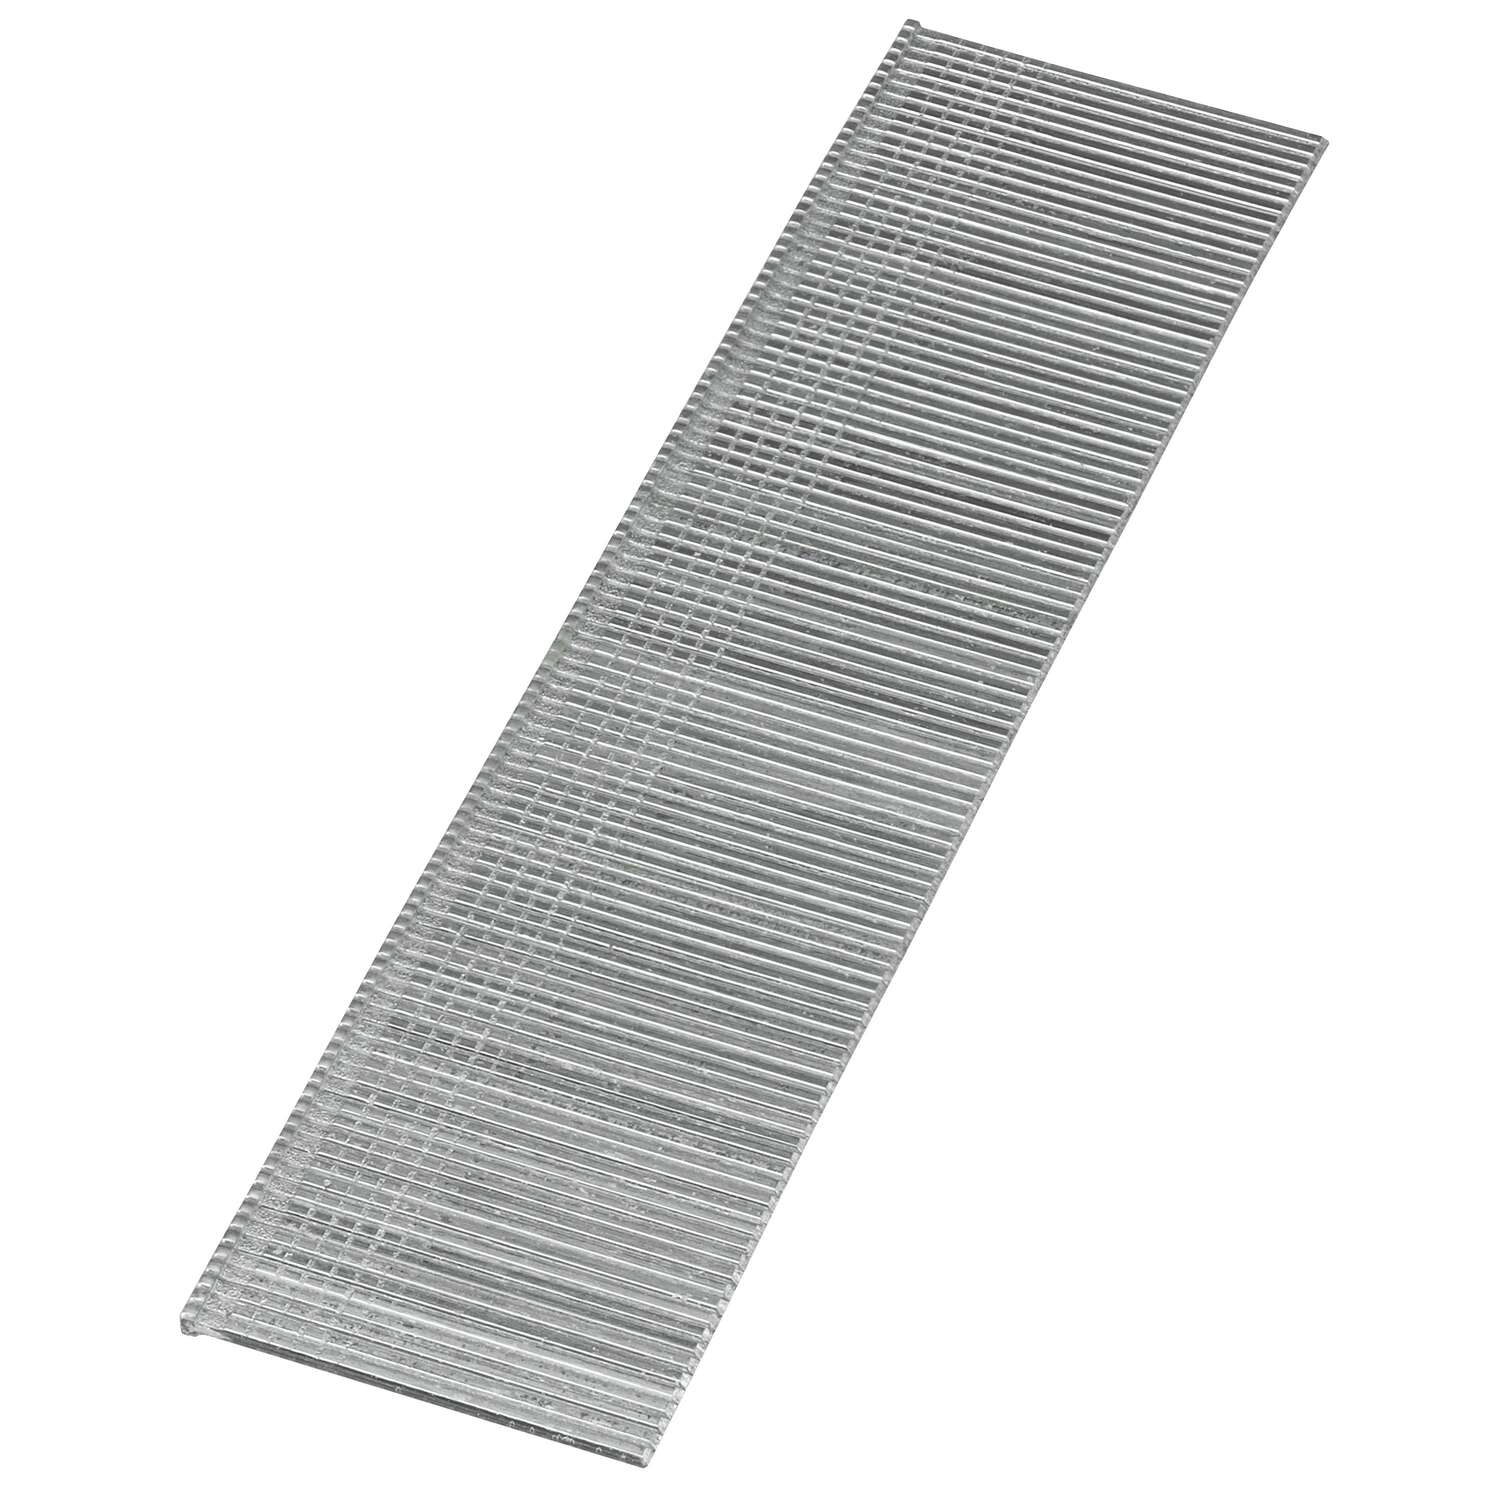 Bostitch 18 Ga. x 1-3/16 in. L Galvanized Steel Brad Nails 3000 pk